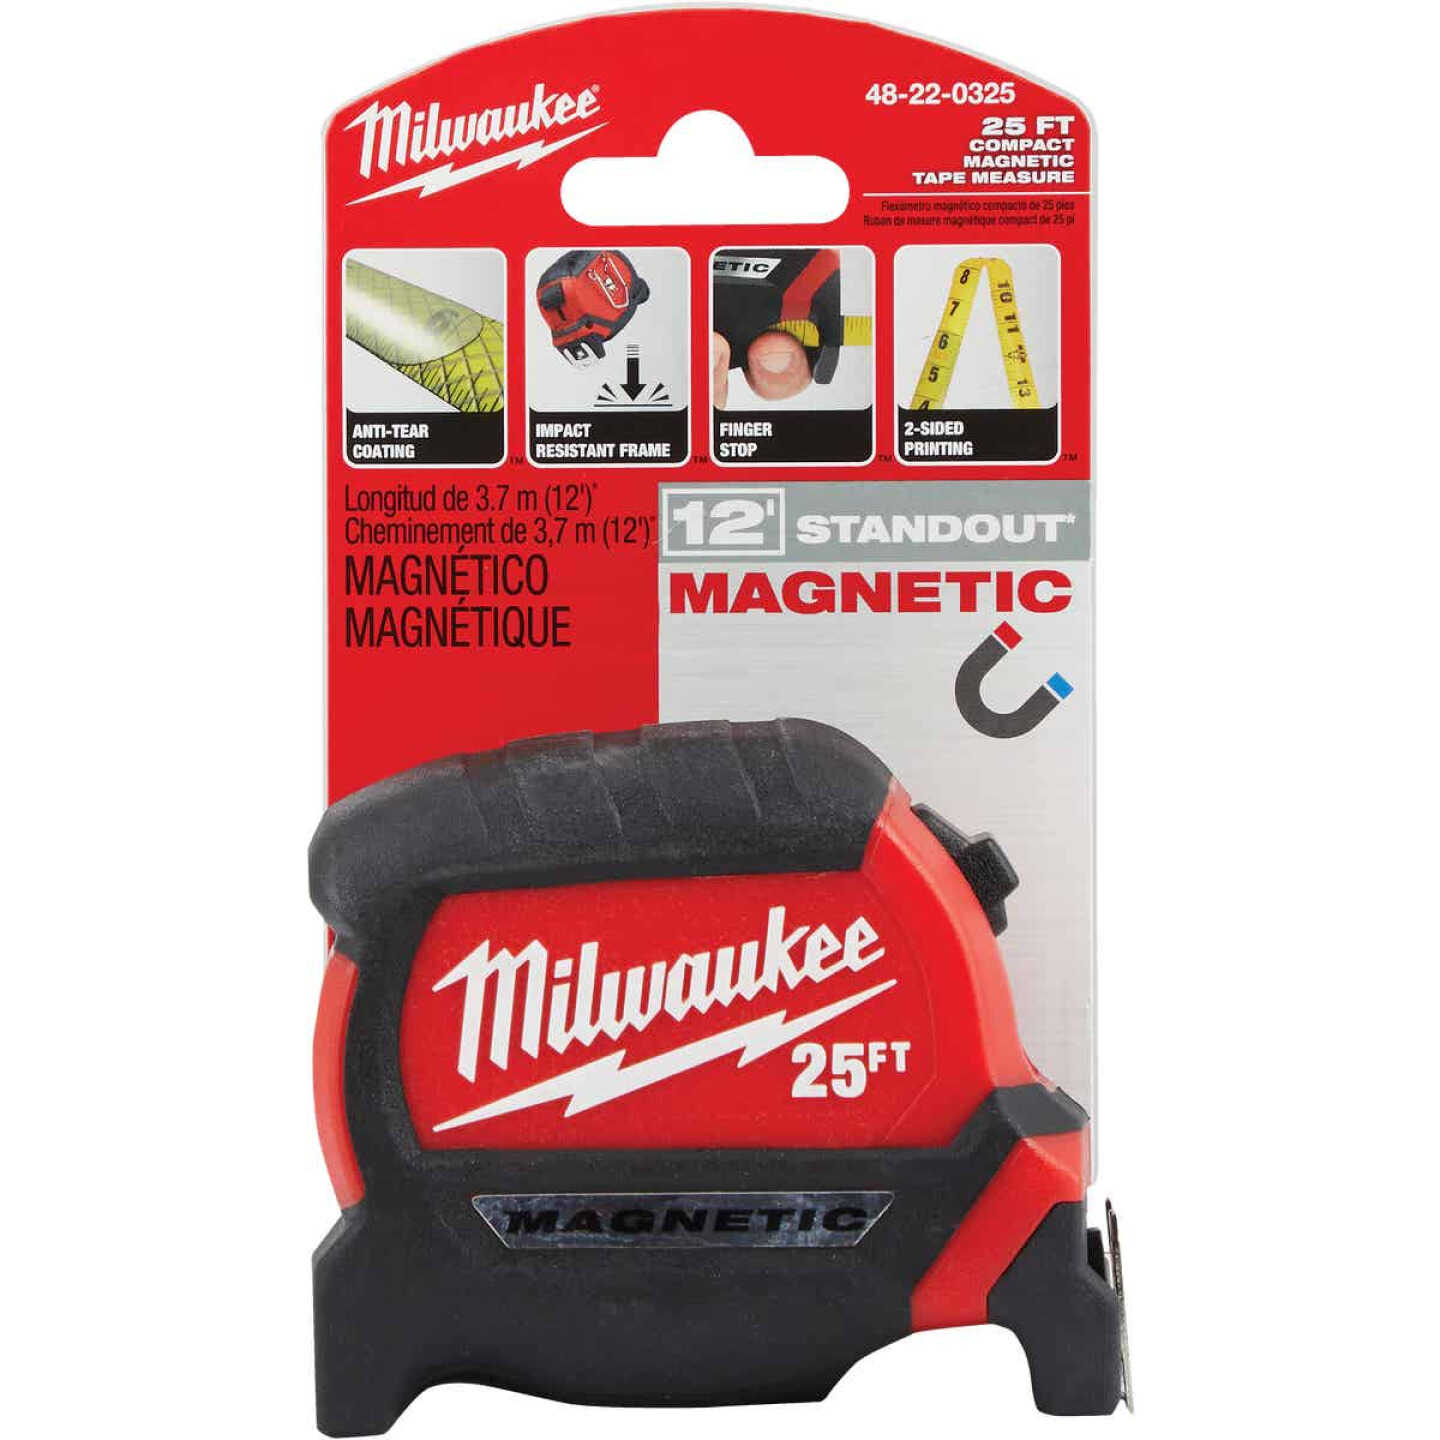 Milwaukee 25 Ft. Compact Wide Blade Magnetic Tape Measure Image 2